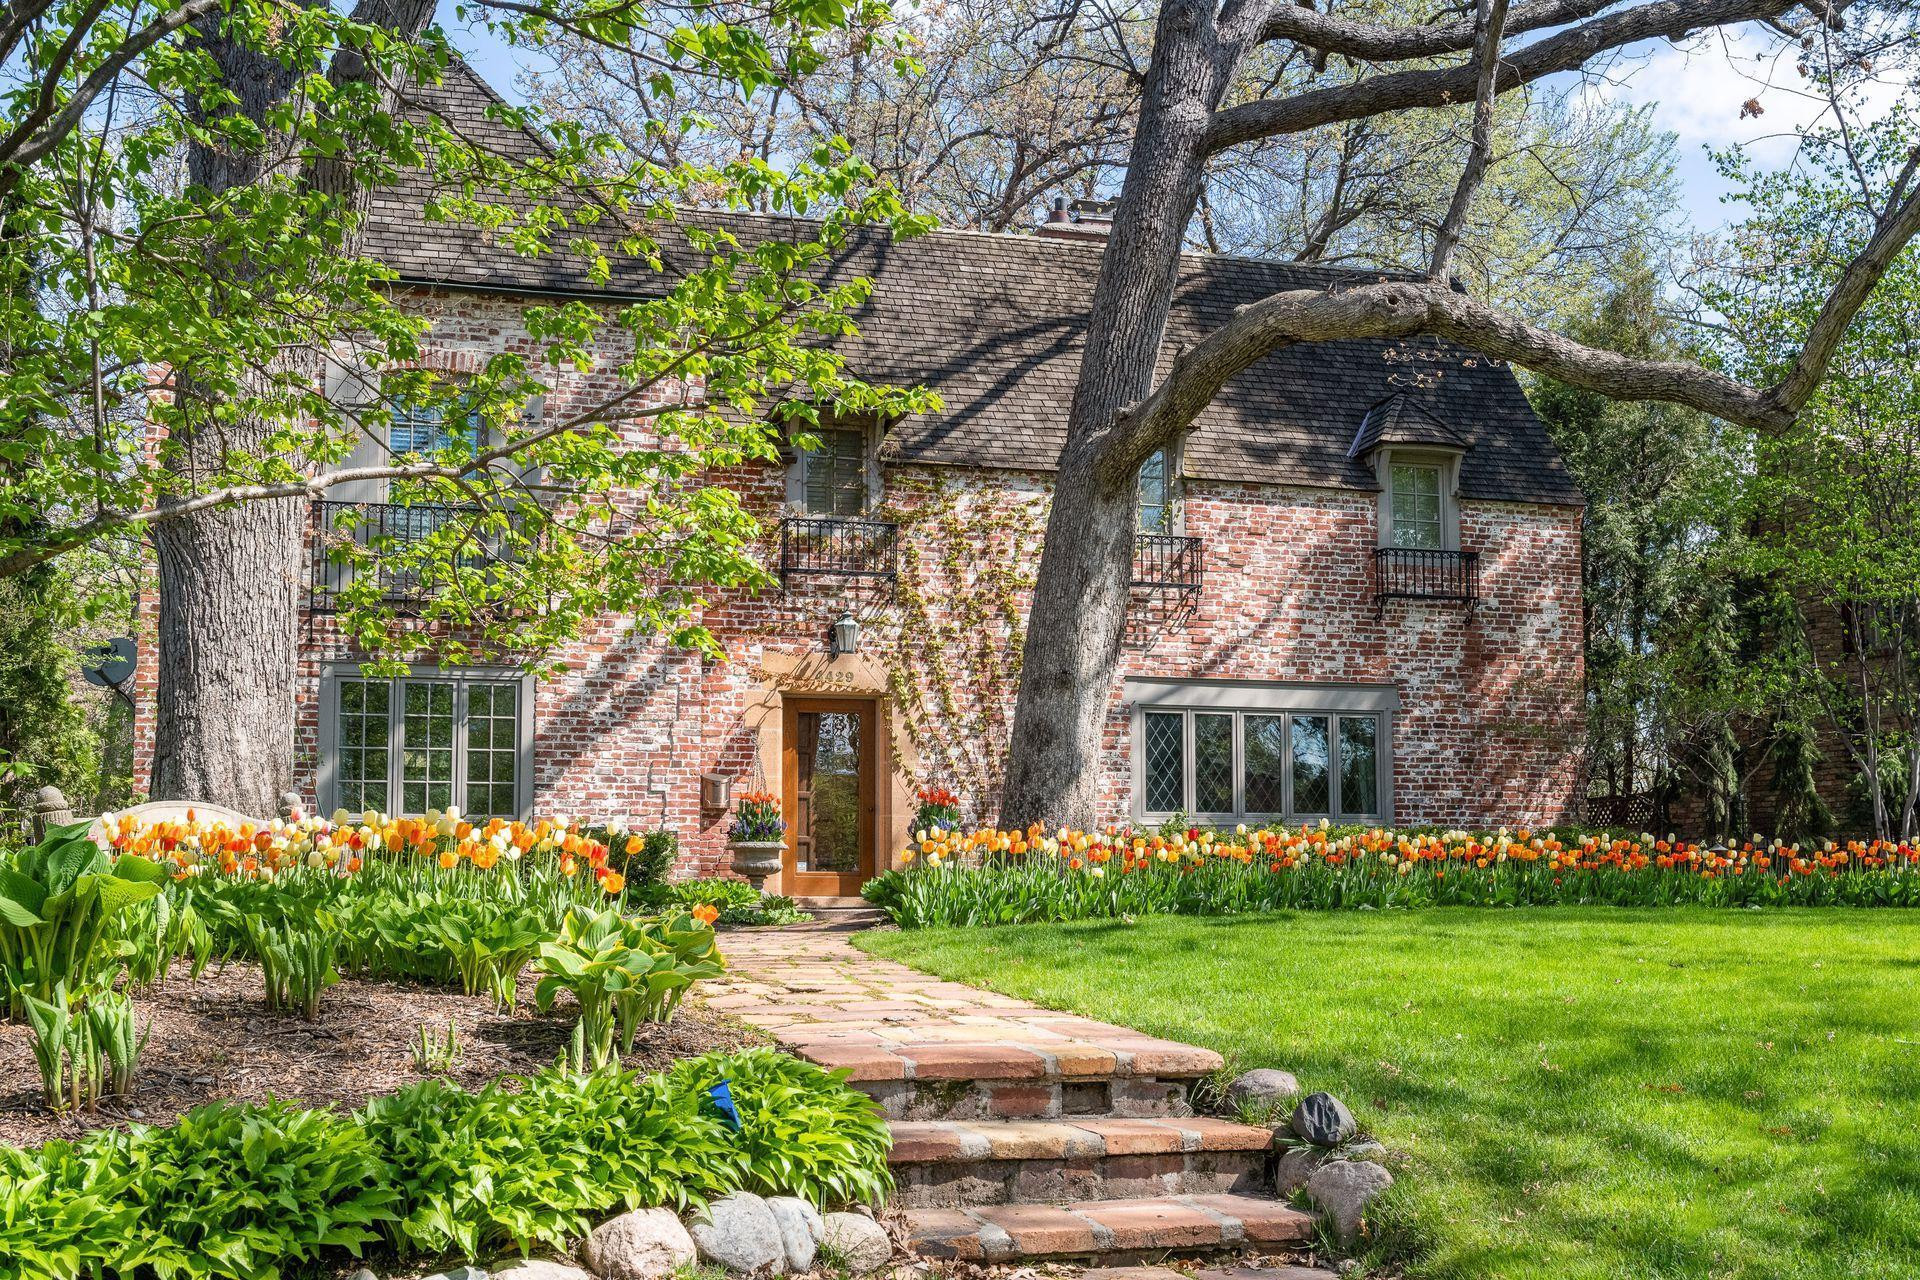 THE ARCHITECTURAL DETAILING OF THIS CHATEAU STYLE MANSE WAS INSPIRED BY A NOTED TWIN CITIES ARCHITECT WHO DESIGNED THE HOME FOR HIS FAMILY TO REFLECT UPON THEIR FREQUENT SUMMERS SPENT IN NORMANDY.